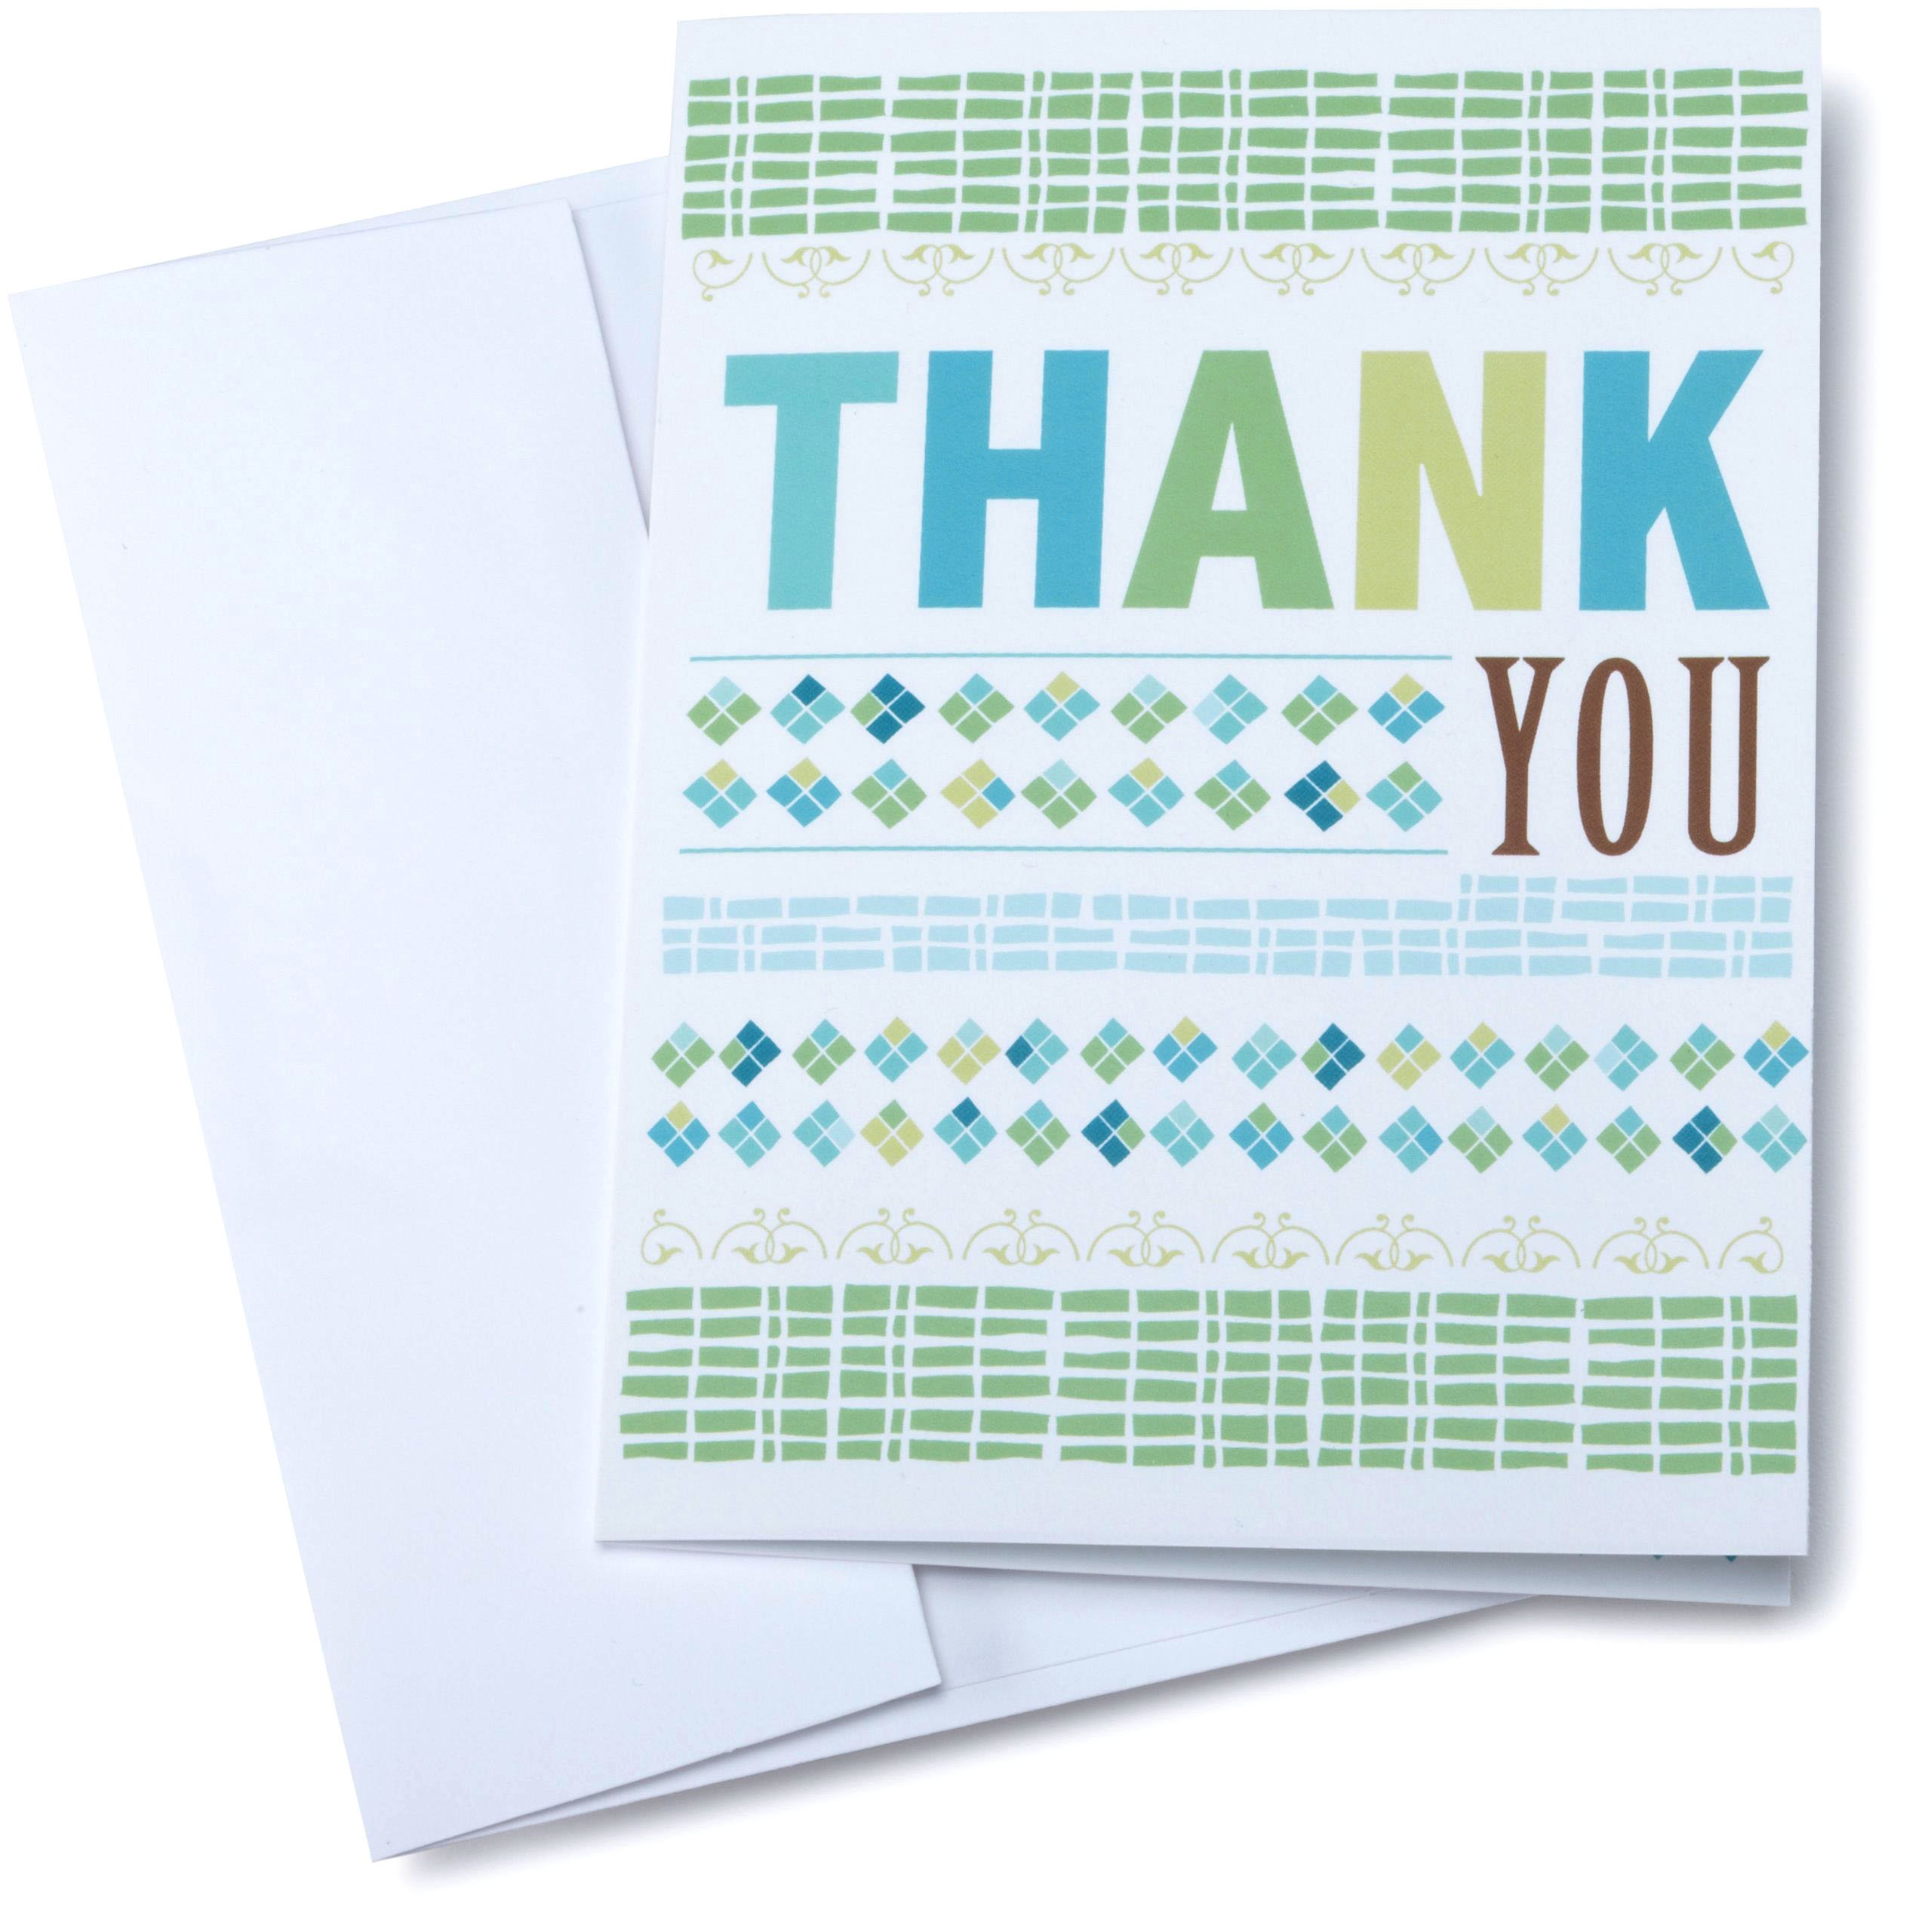 Amazon.com $500 Gift Card in a Greeting Card (Thank You Design) by Amazon (Image #3)